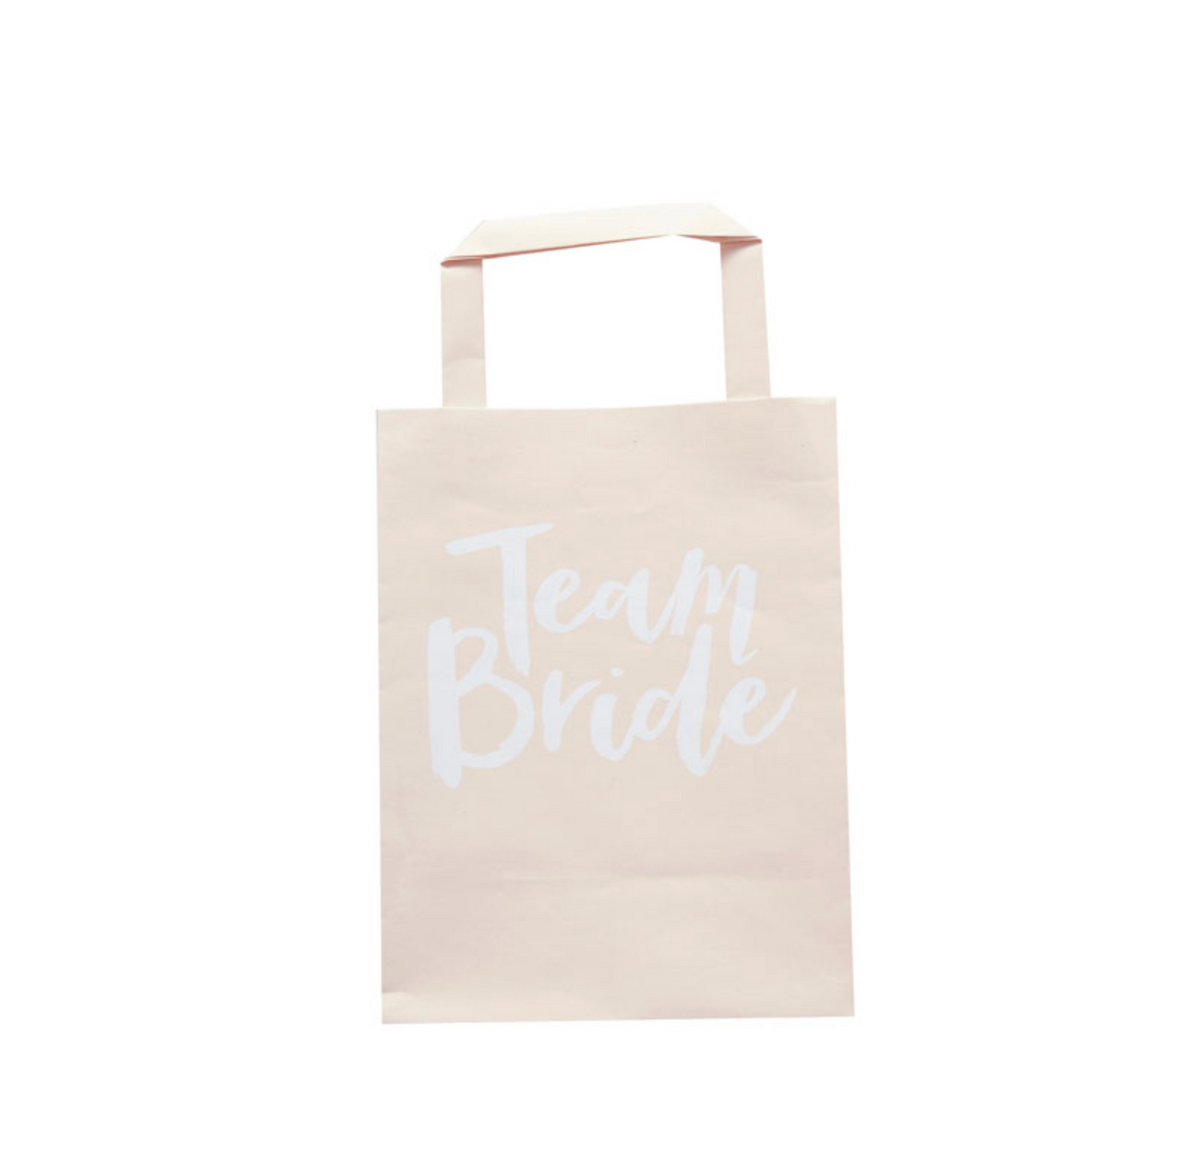 Team Bride – Hen Party Goodie Bags